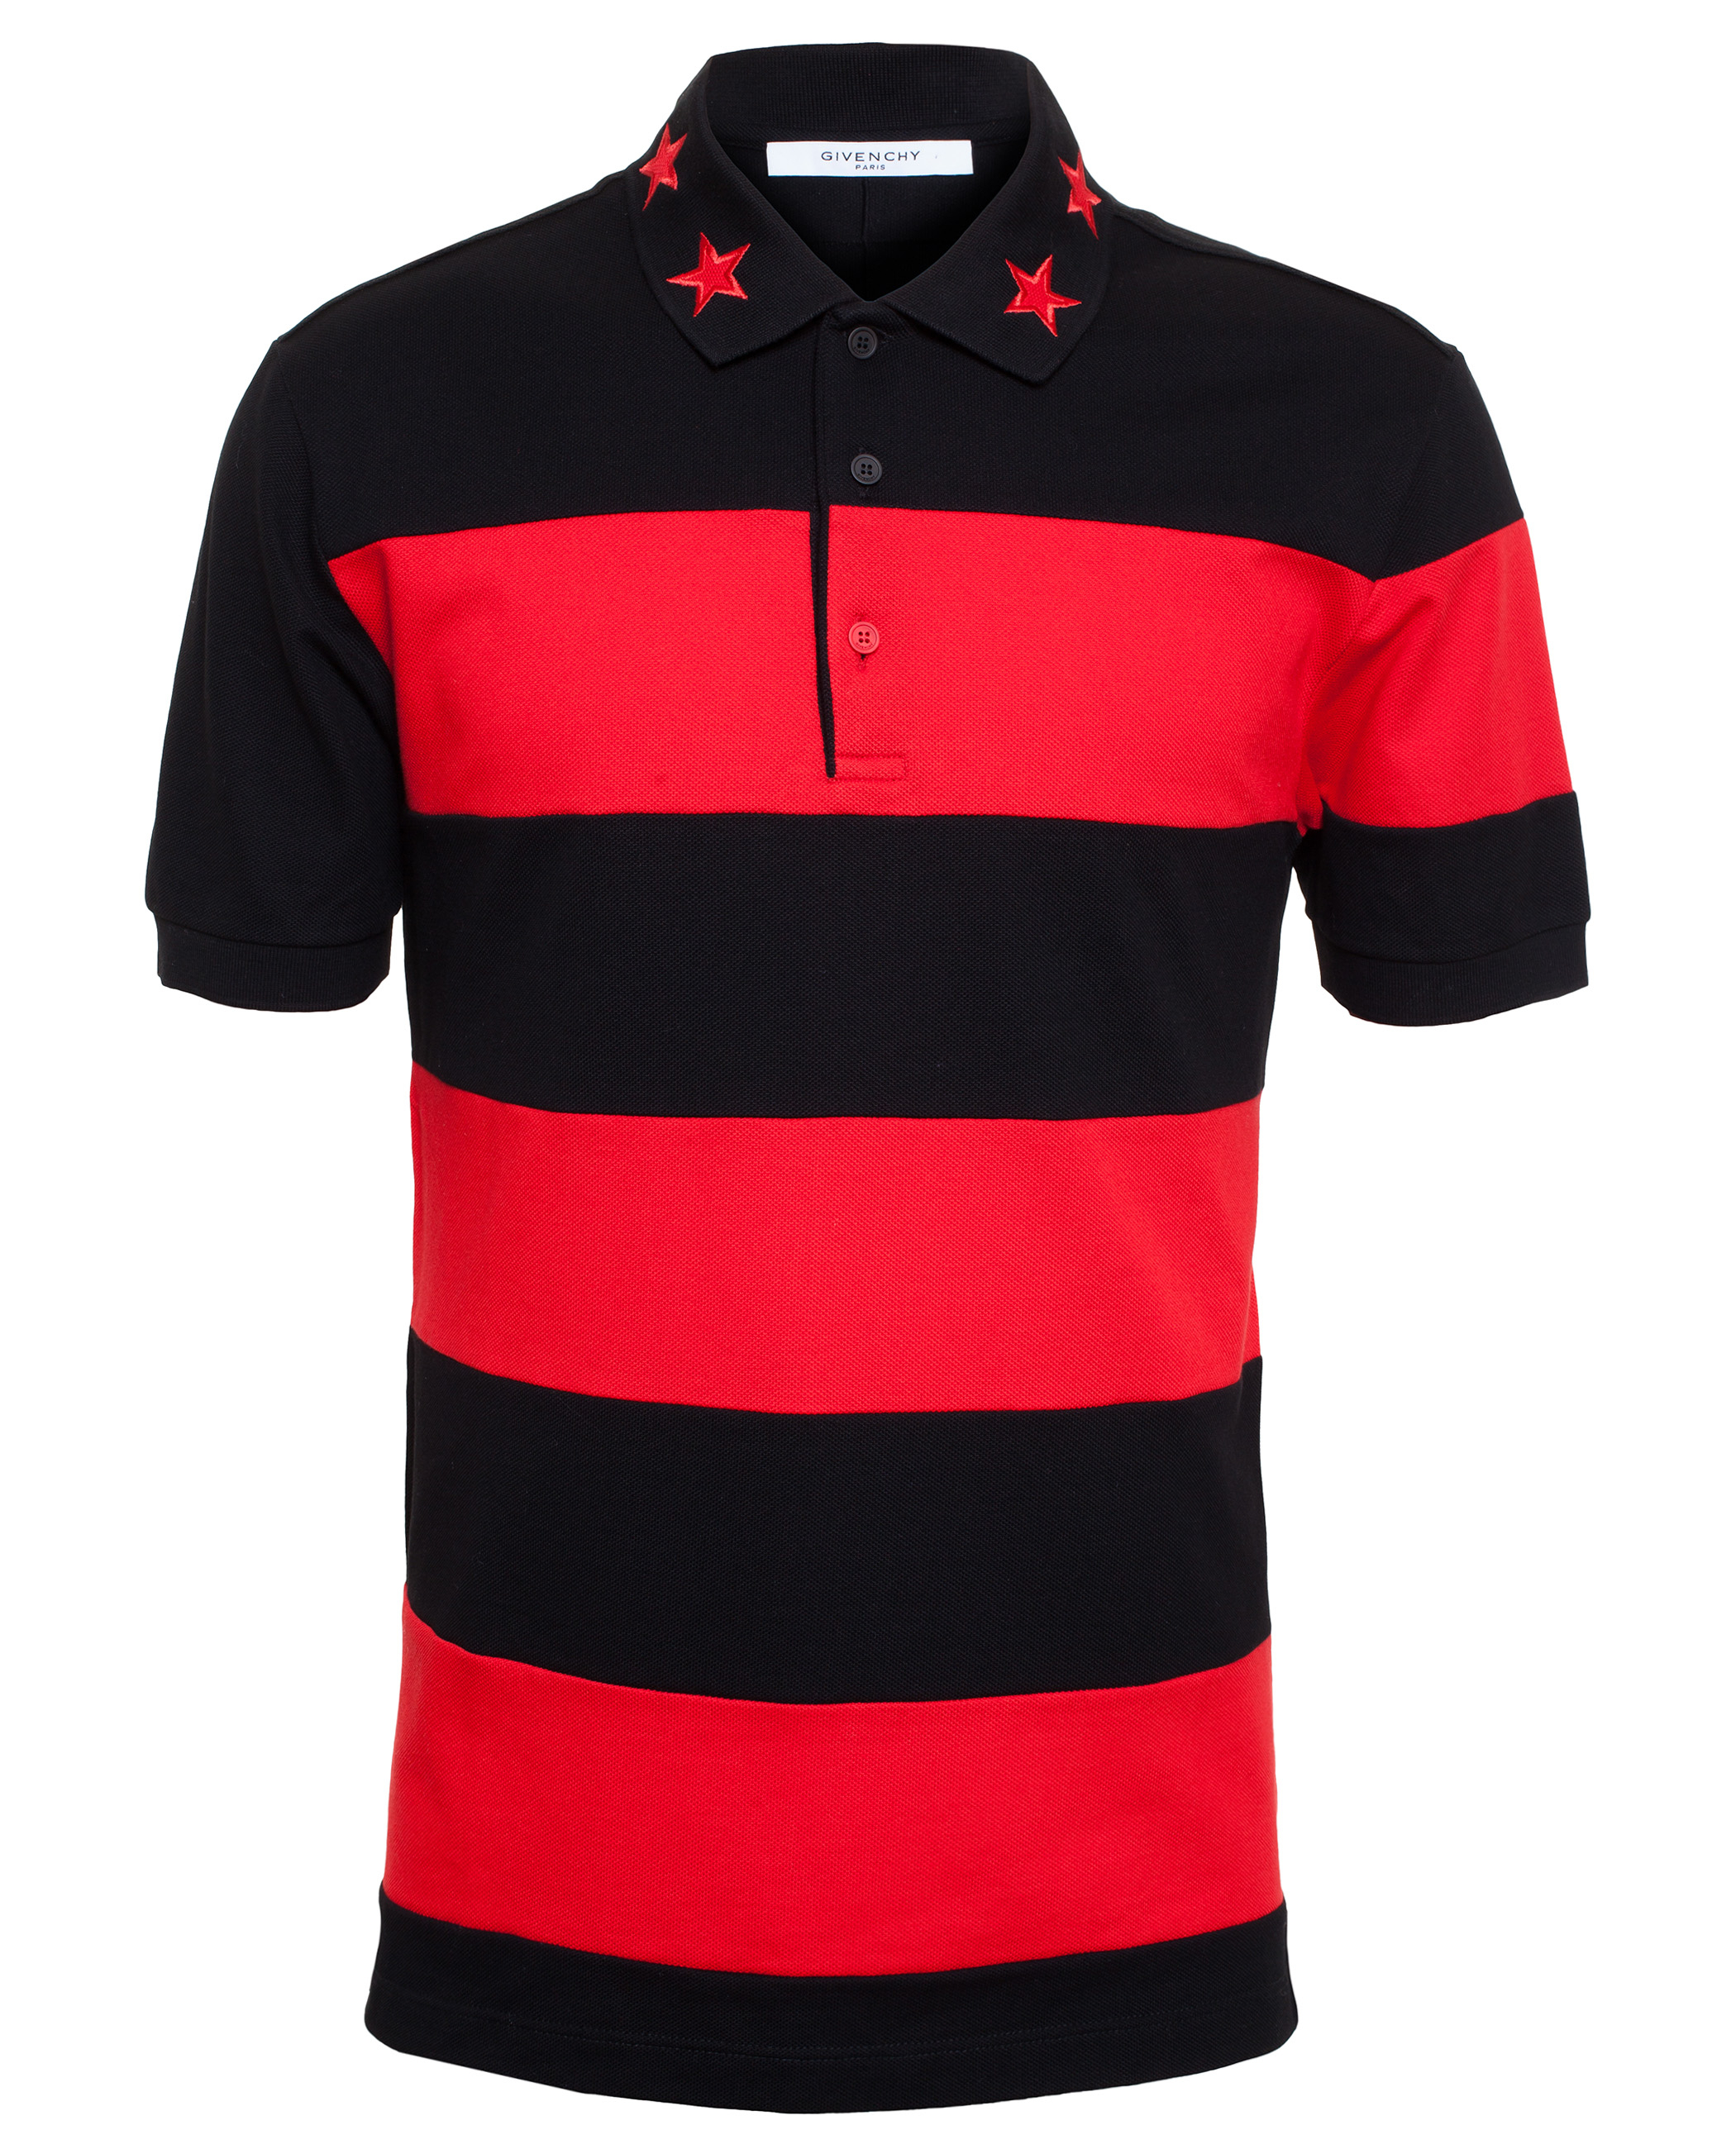 red polo shirt with black collar